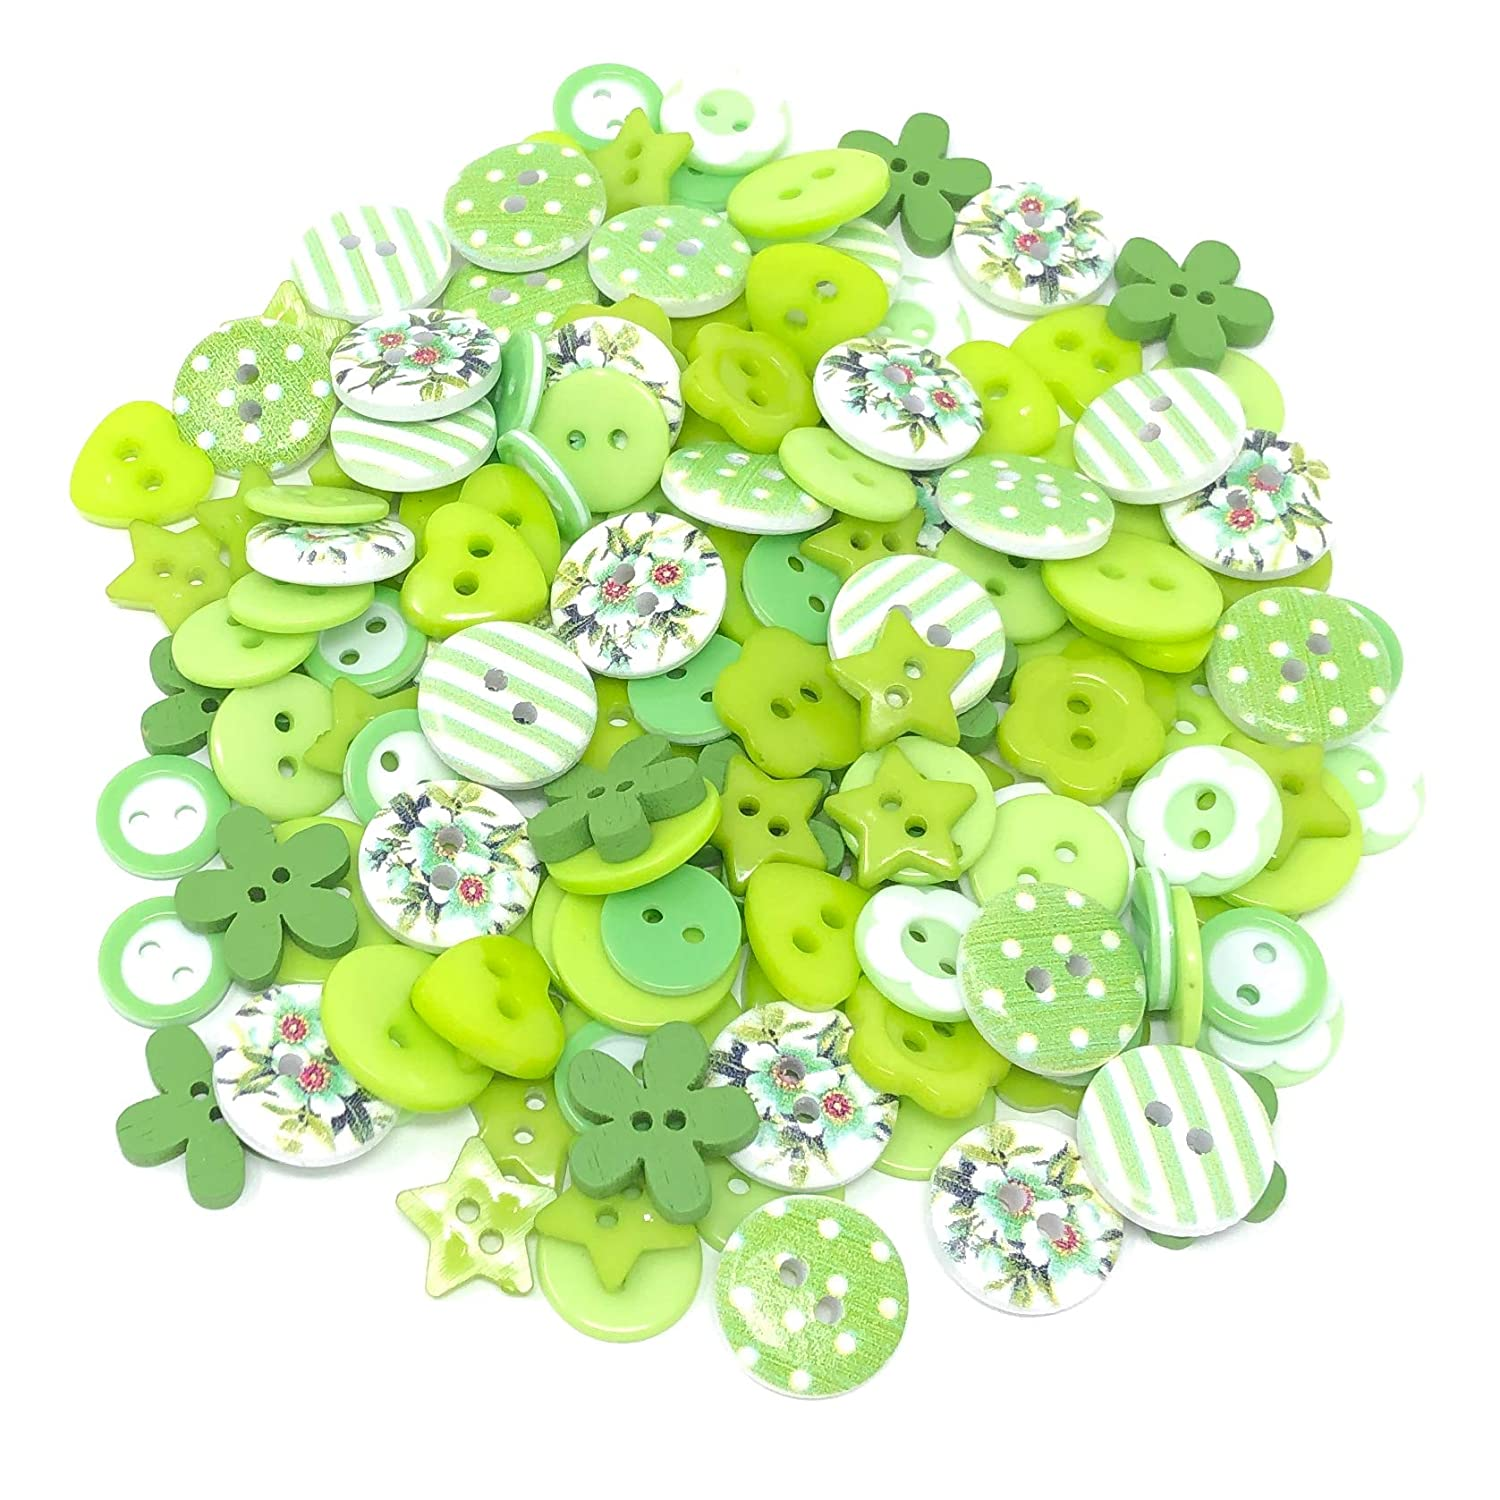 150pcs Green/White Mix Wood Acrylic & Resin Buttons For Cardmaking Embellishments Wedding Touches